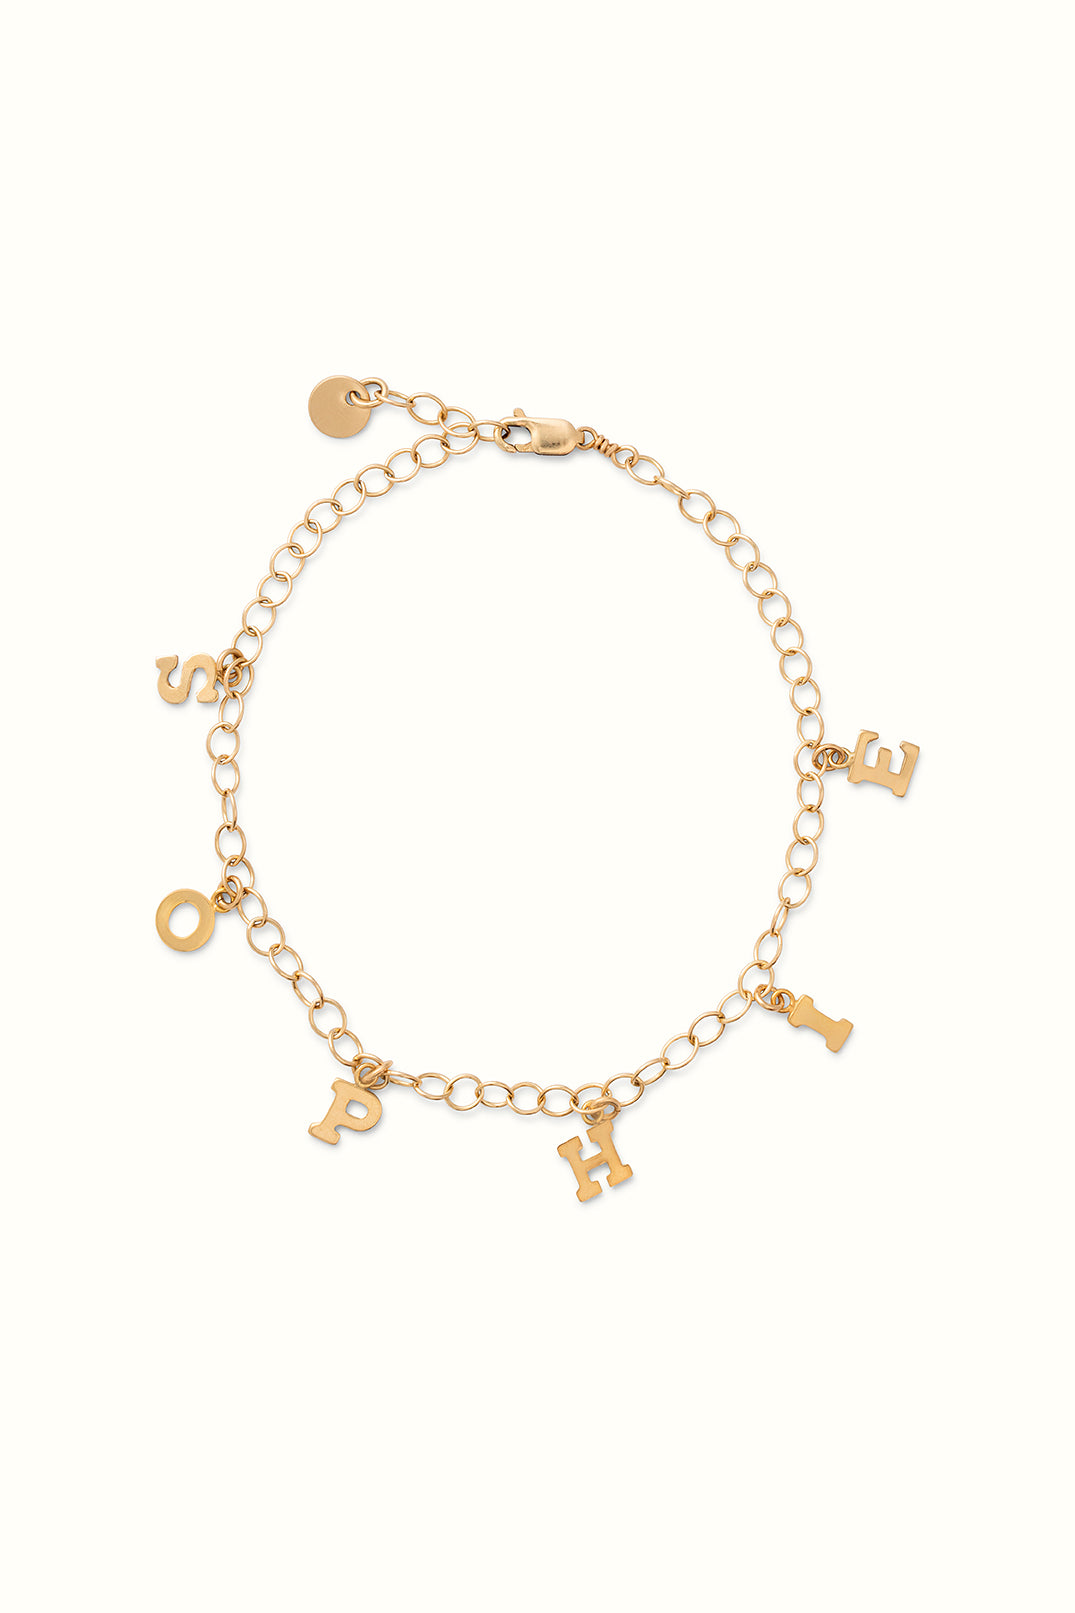 a close up of a gold filled initial charm bracelet